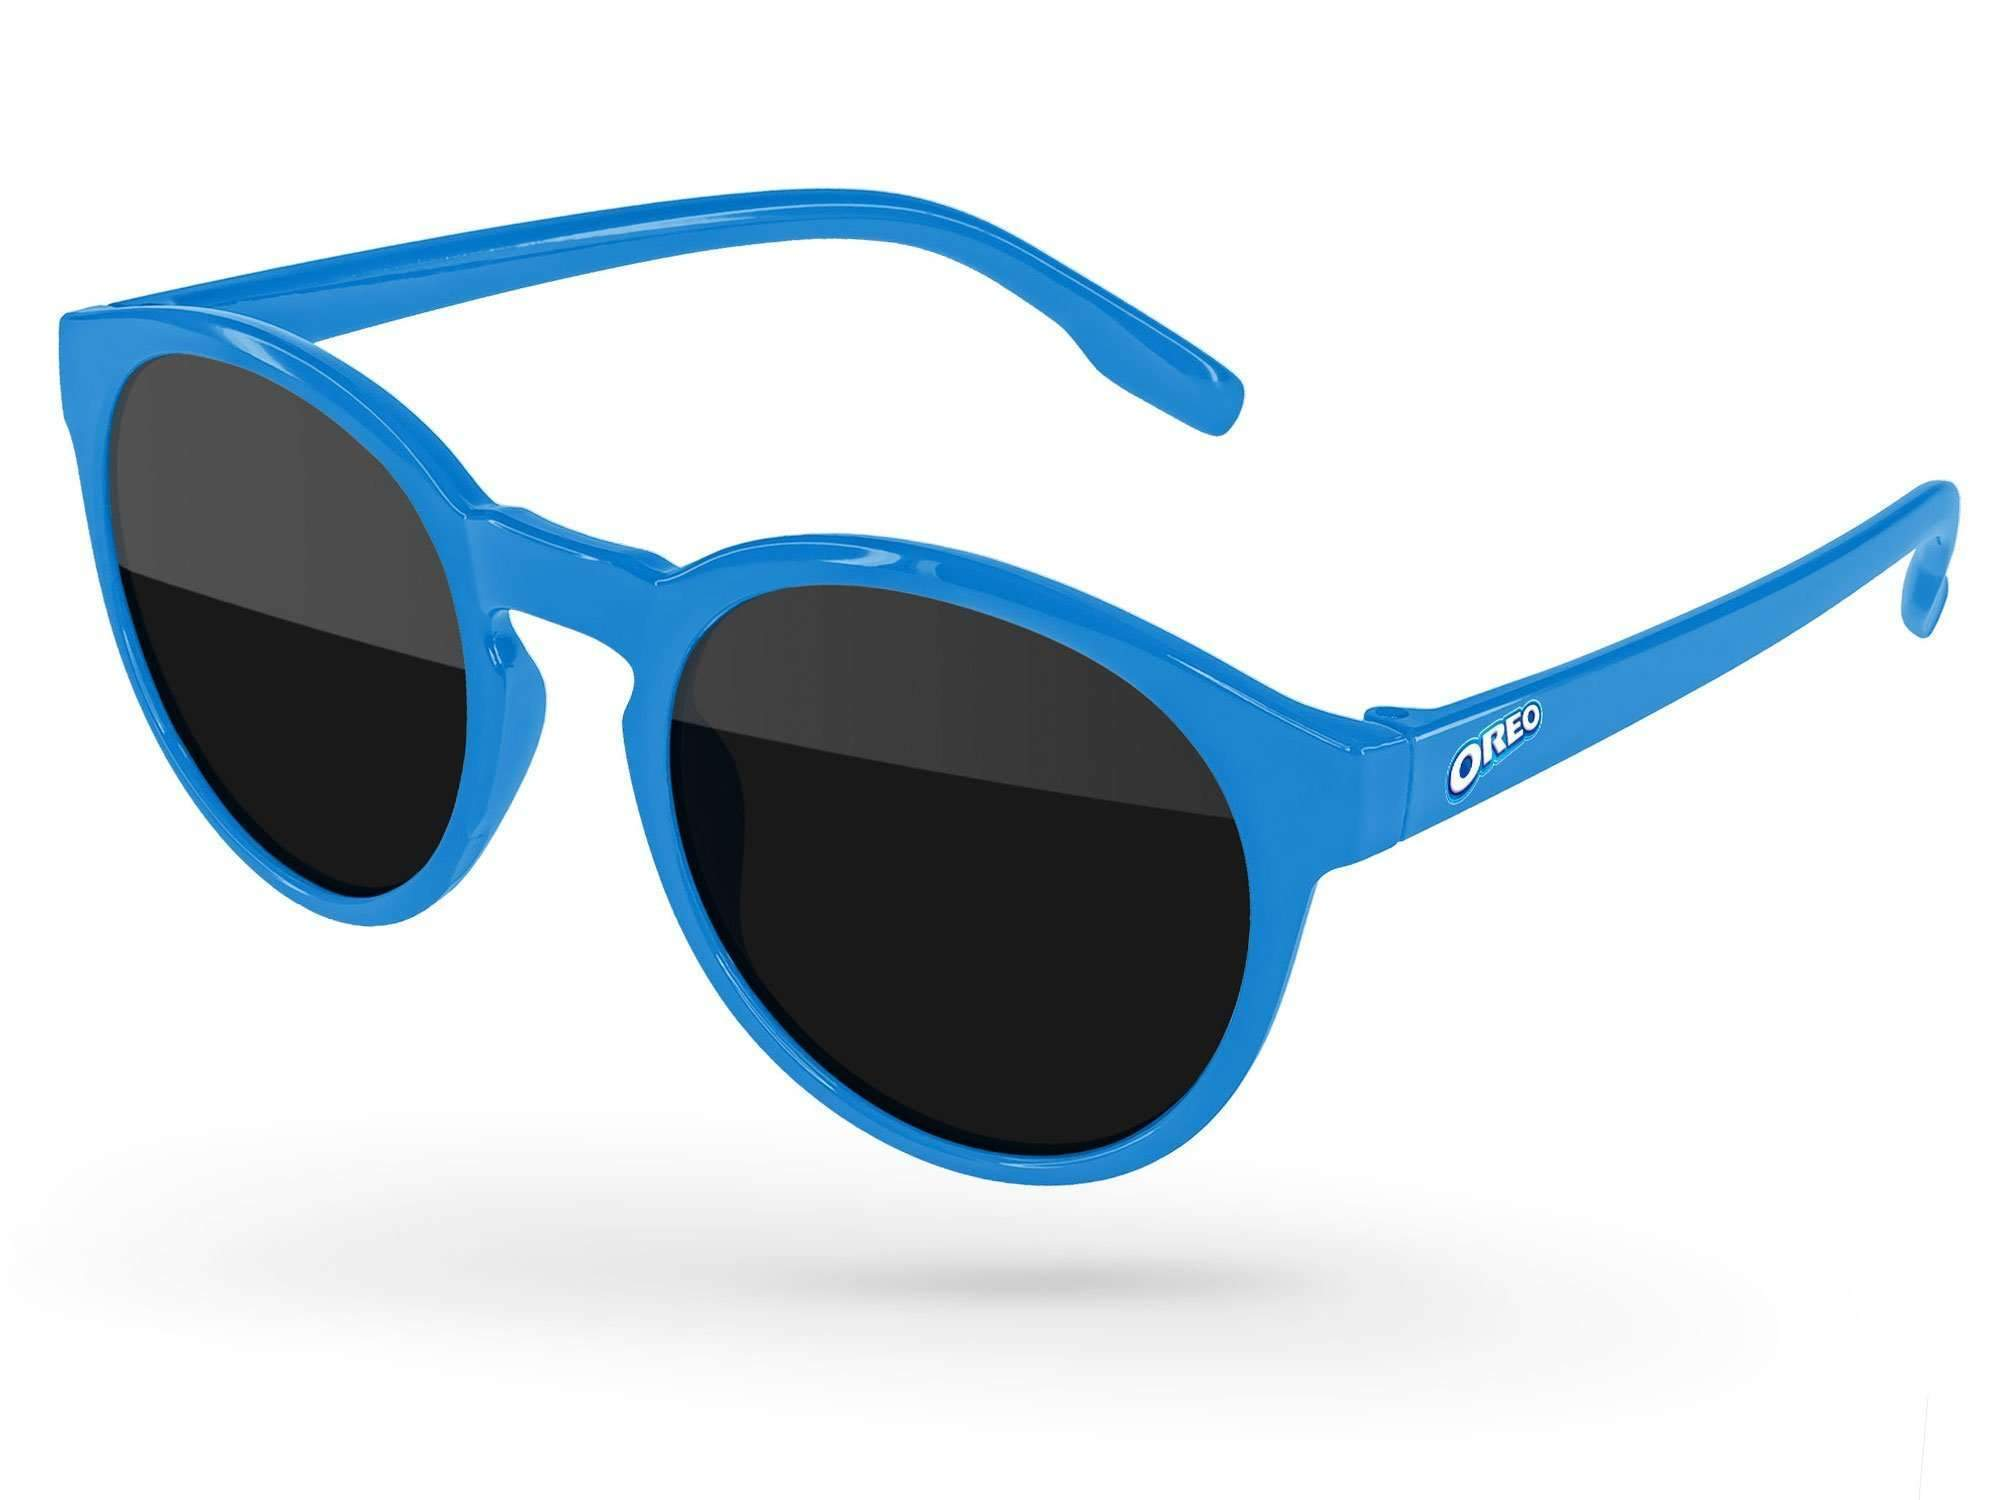 VD020 - Vicky Promotional Sunglasses w/ full-color temple imprint